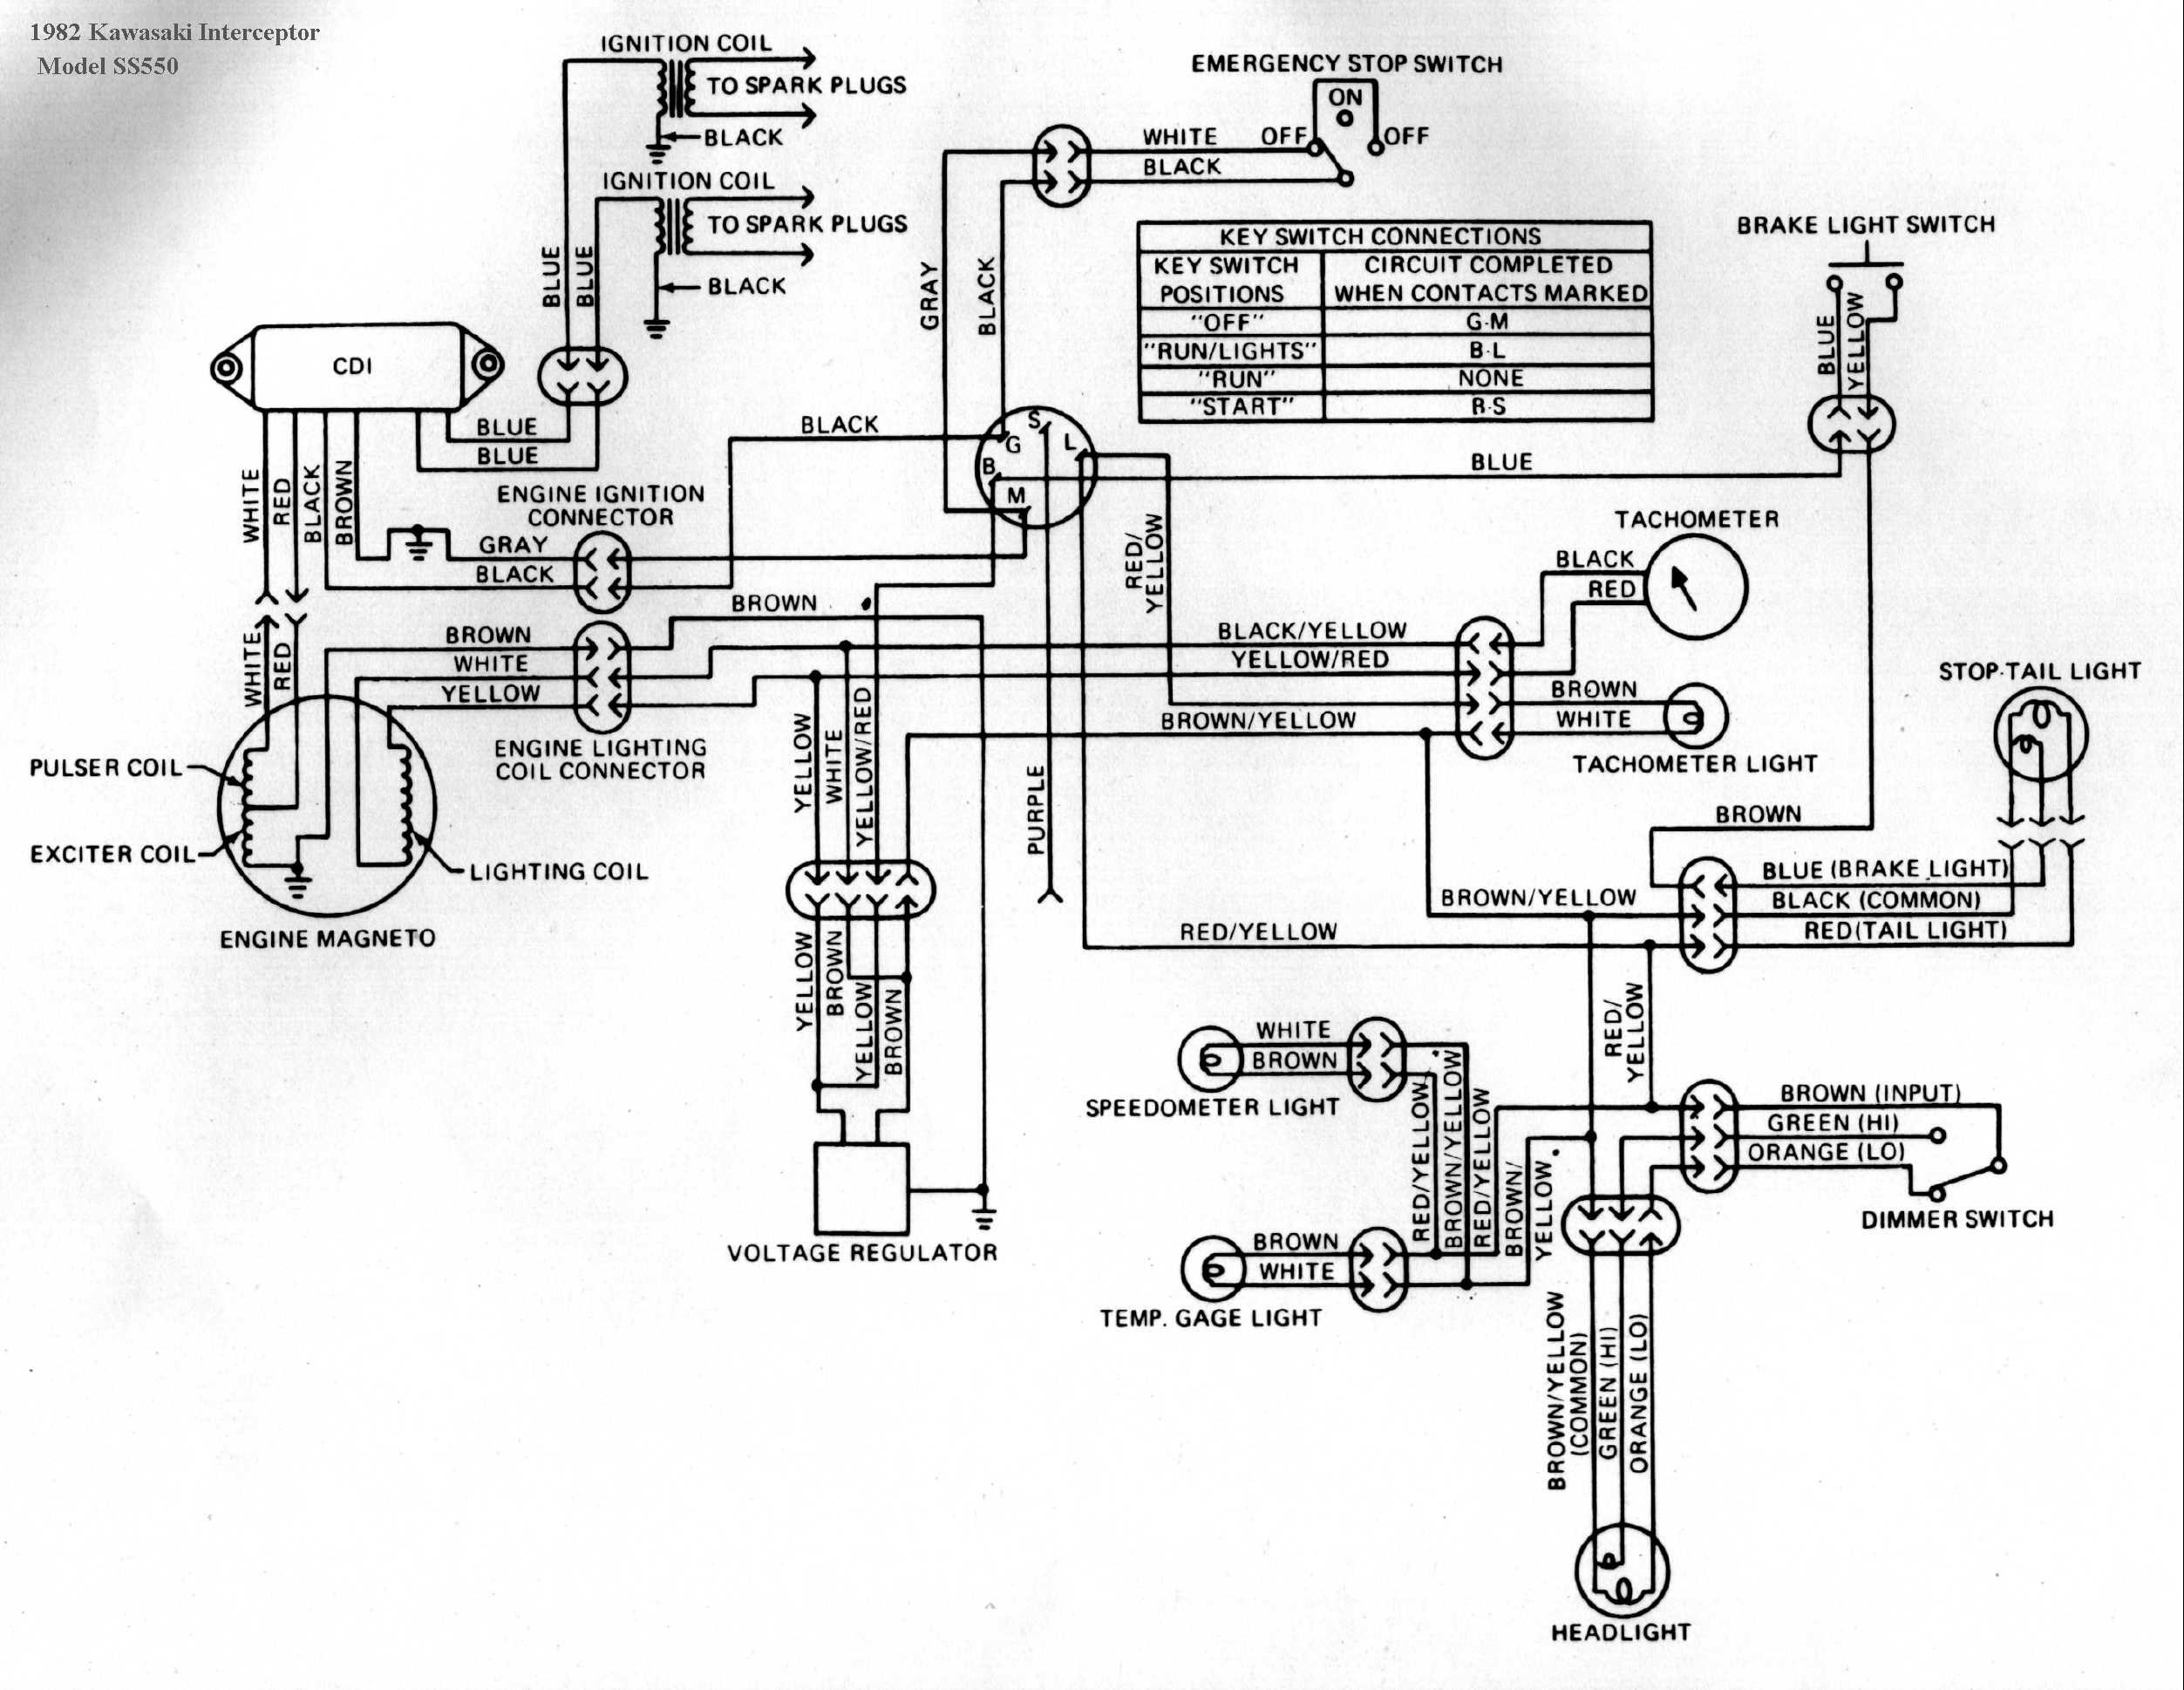 ss550 kawasaki snowmobile wiring diagrams wiring diagram ski doo snowmobile at pacquiaovsvargaslive.co